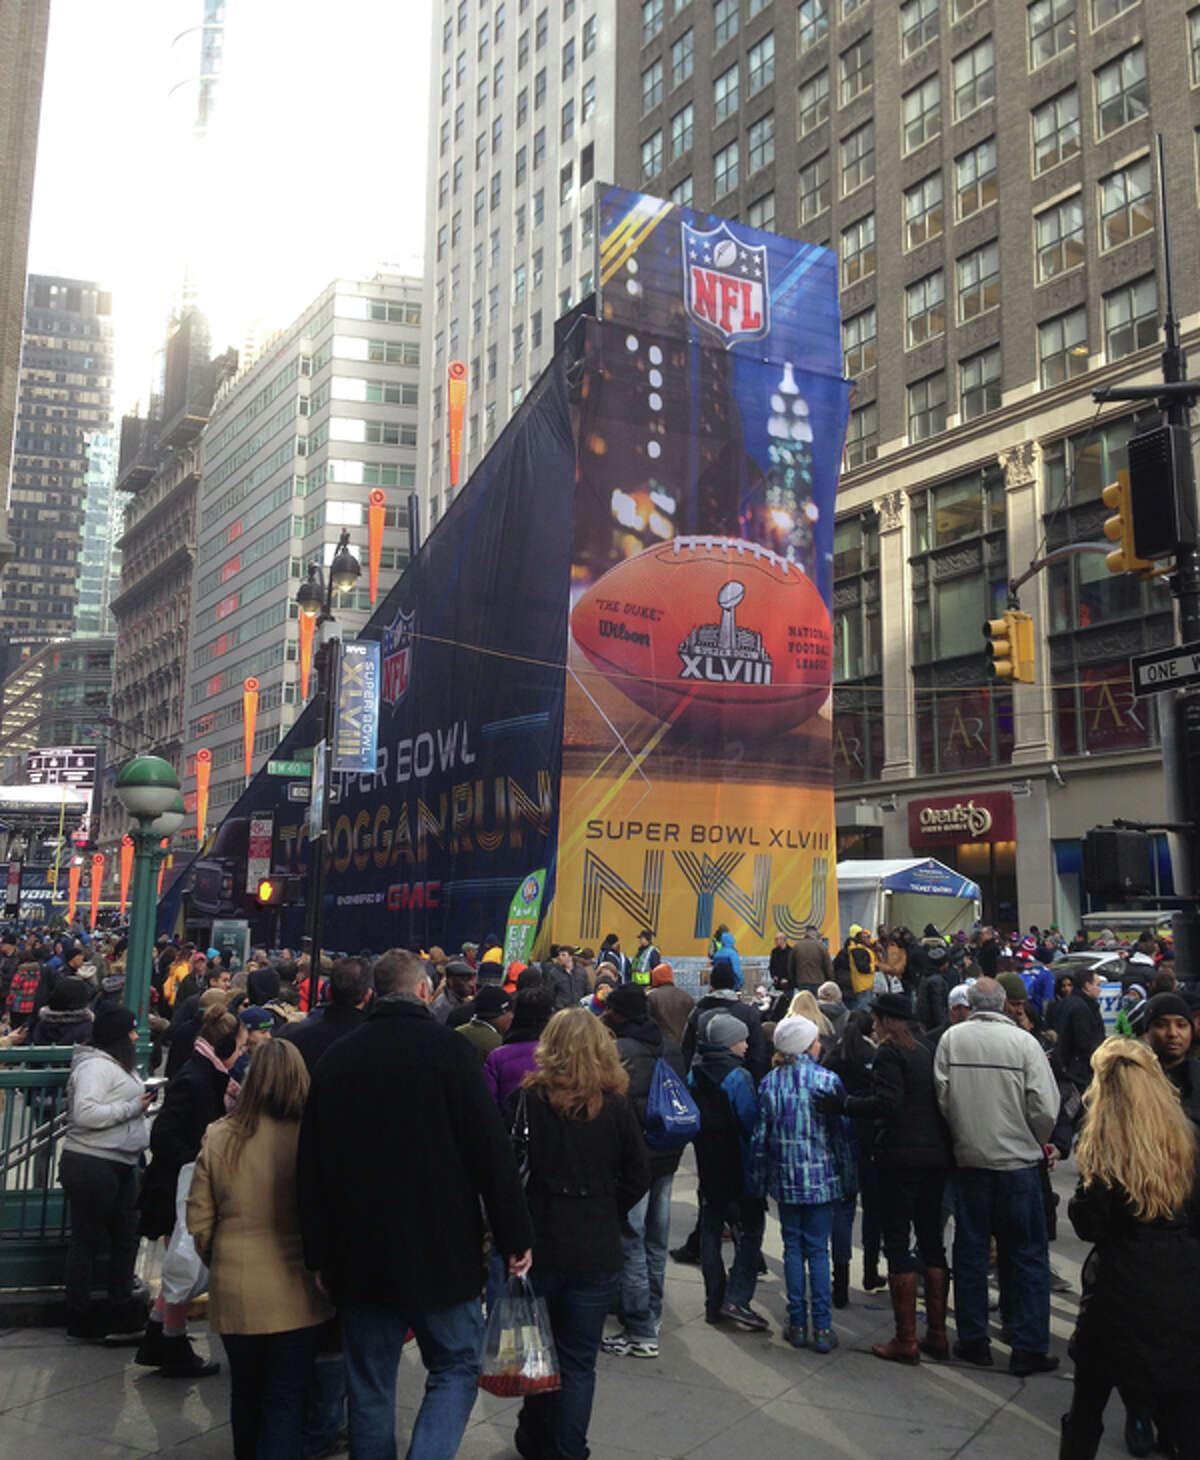 Scenes from Super Bowl Boulevard, aka Broadway, in New York on Friday, Jan. 31, 2014.